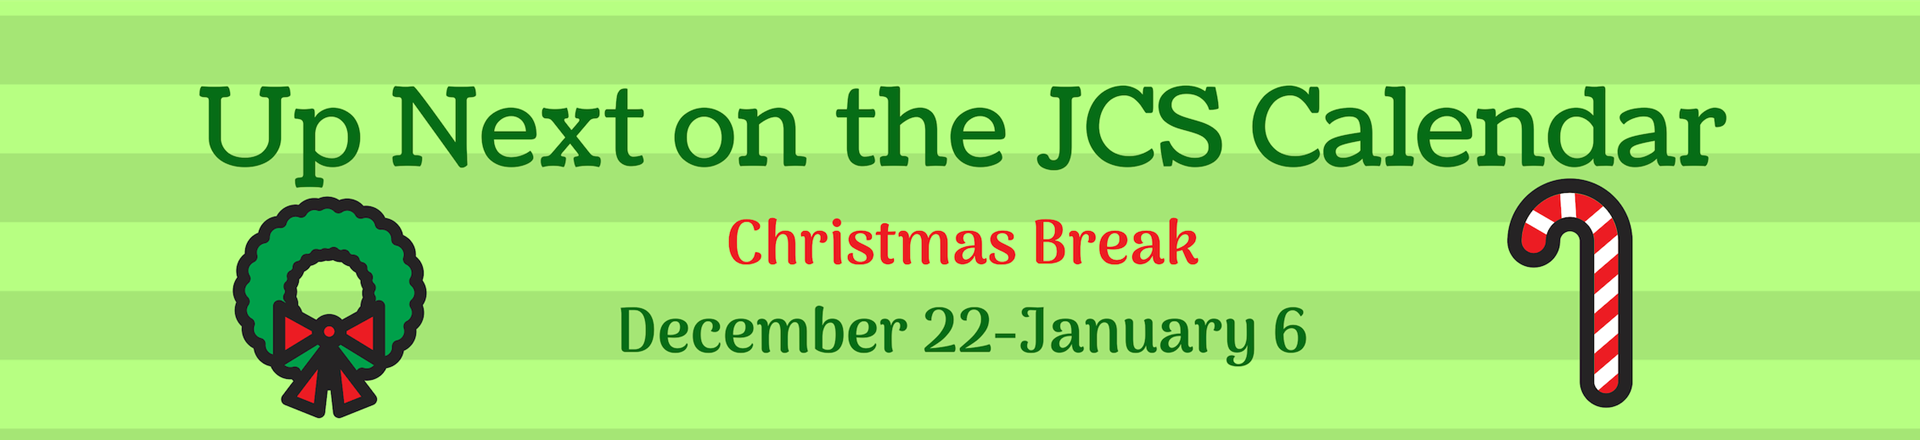 Christmas break Dec 22-Jan 6